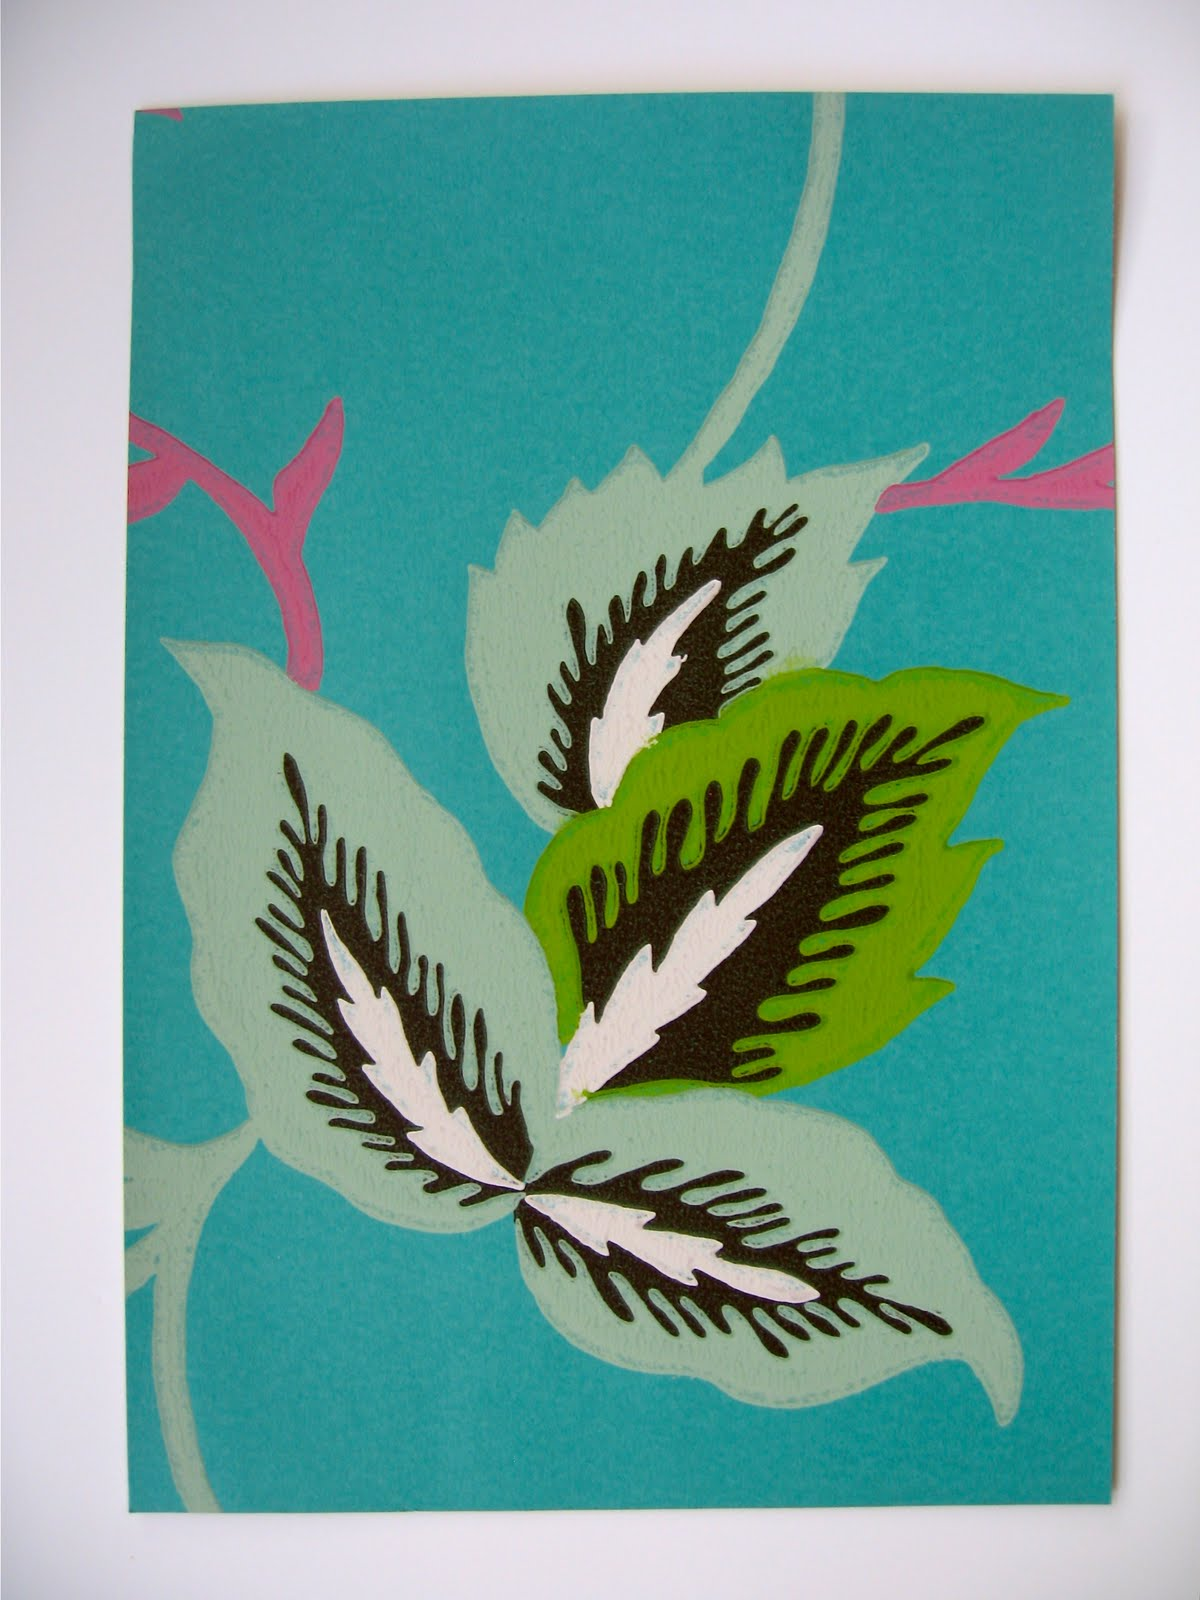 getting inspiration from wallpaper samples Online stores have 1200x1600